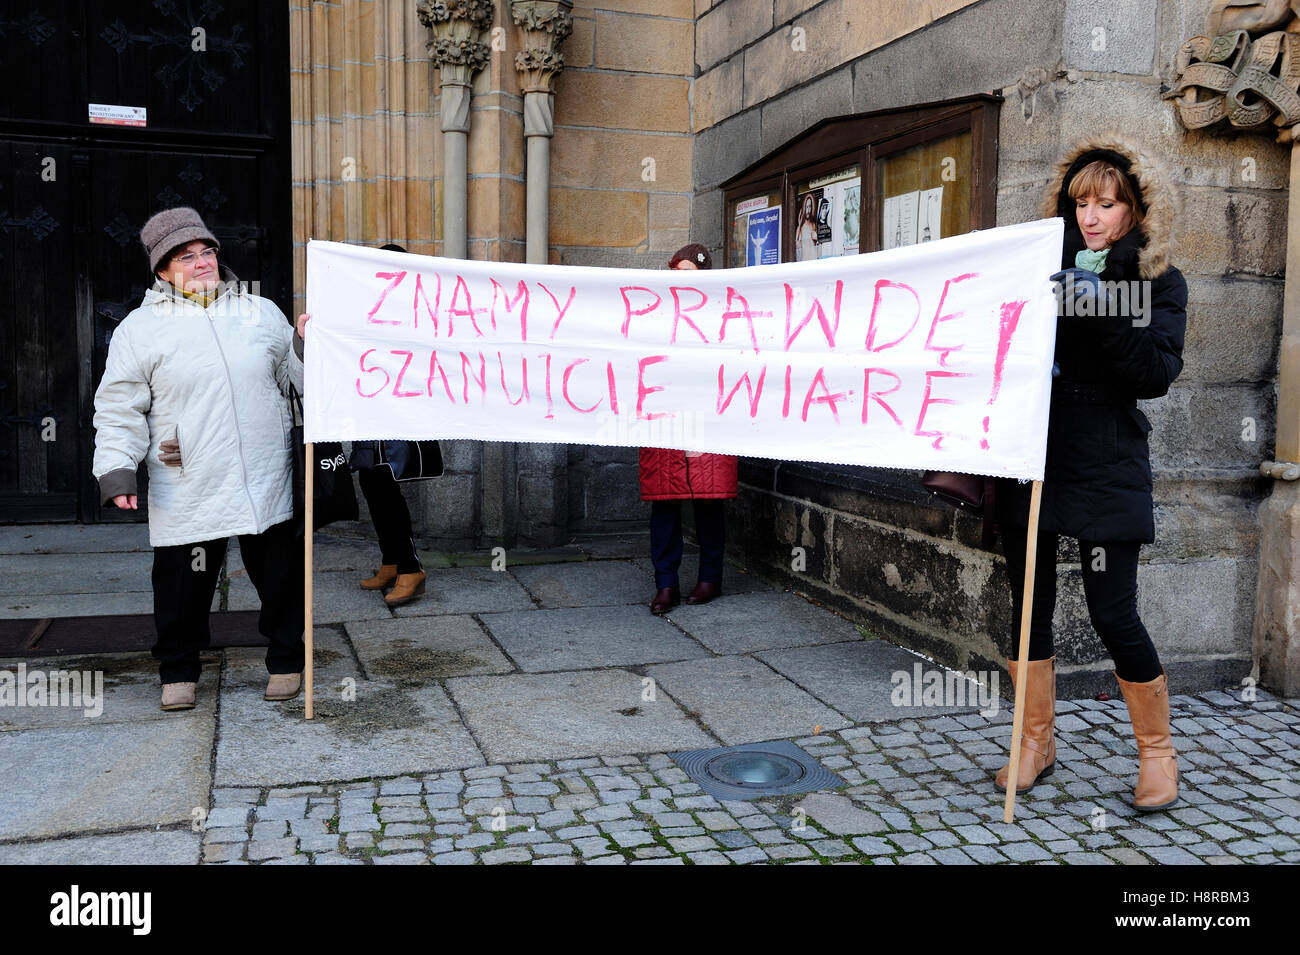 Swidnica, Poland,16th Nov.2016, Curia Bishop, protest against Bishop Ignacy Dec. Credit:  Kazimierz Jurewicz/Alamy - Stock Image